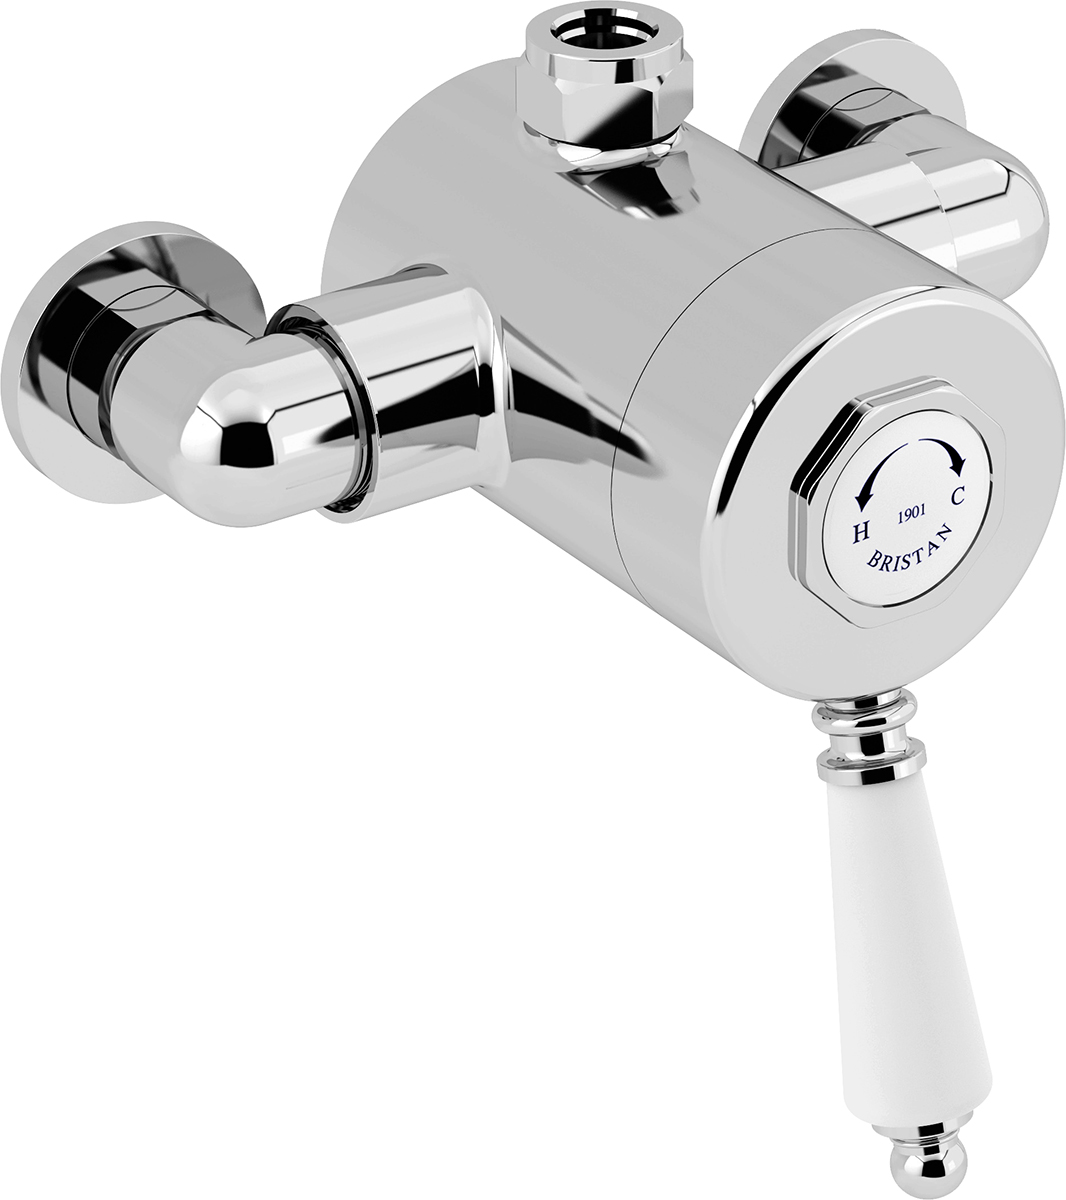 Exposed Single Control Shower - Top Outlet